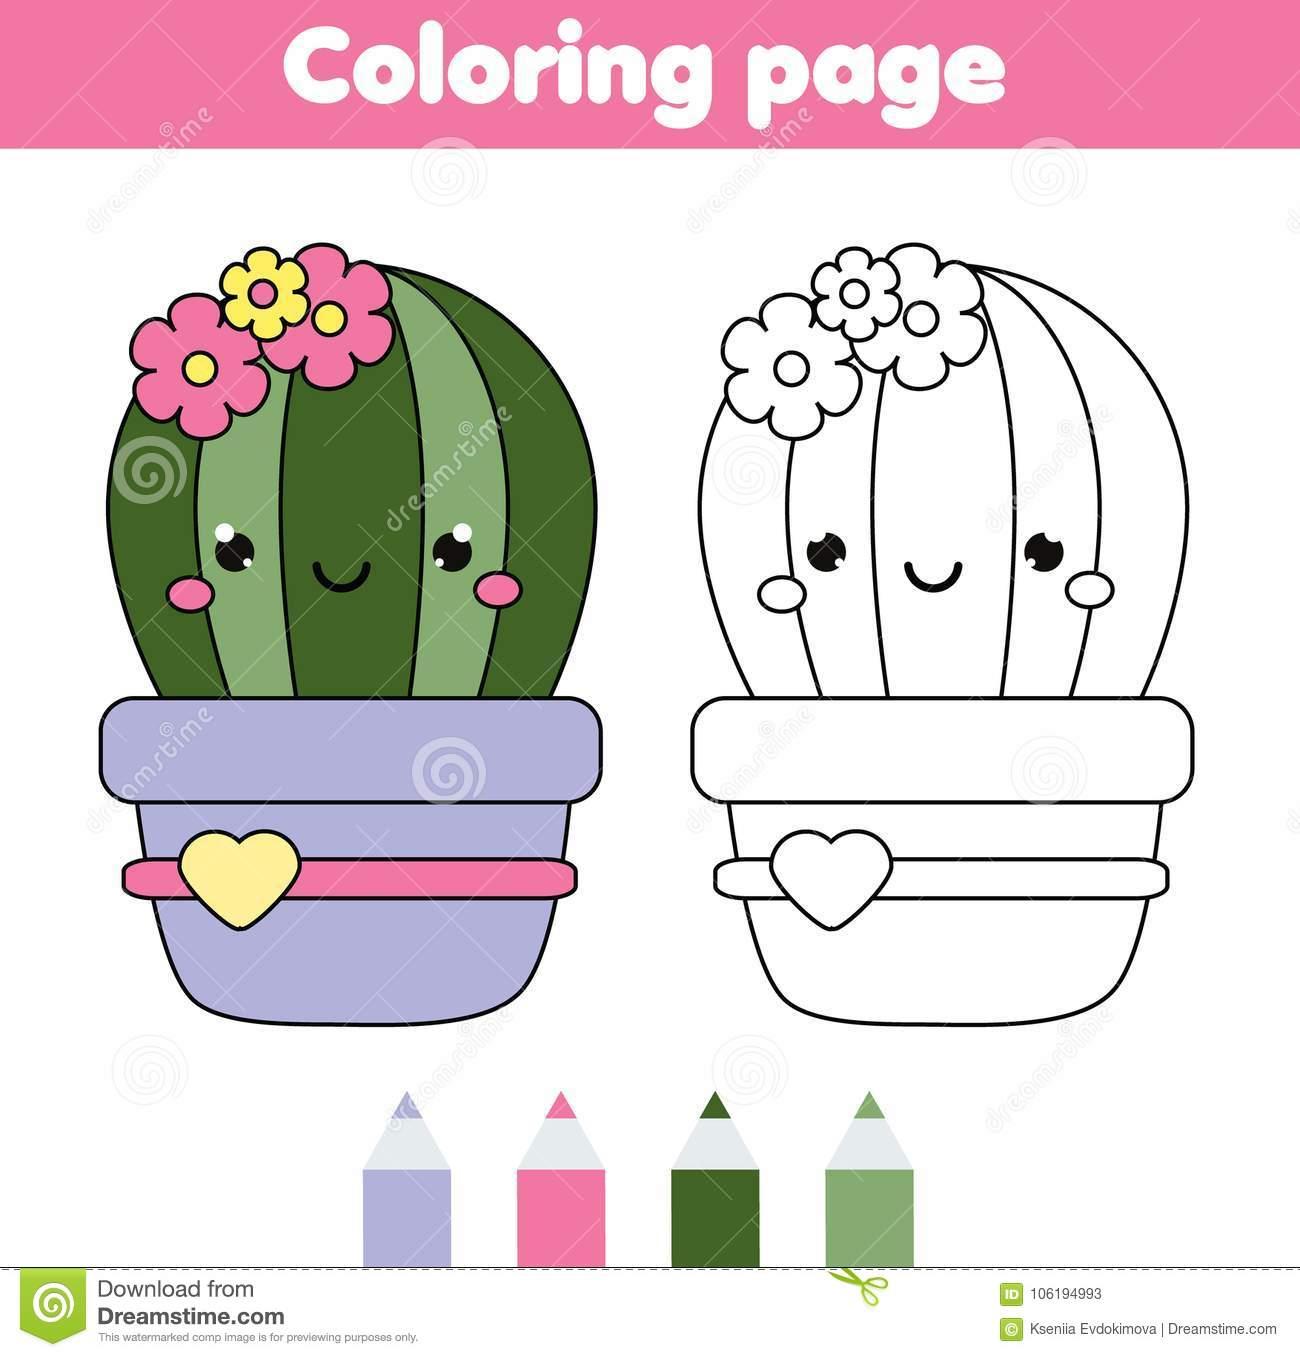 Coloring Page With Cute Cactus Drawing Kids Game